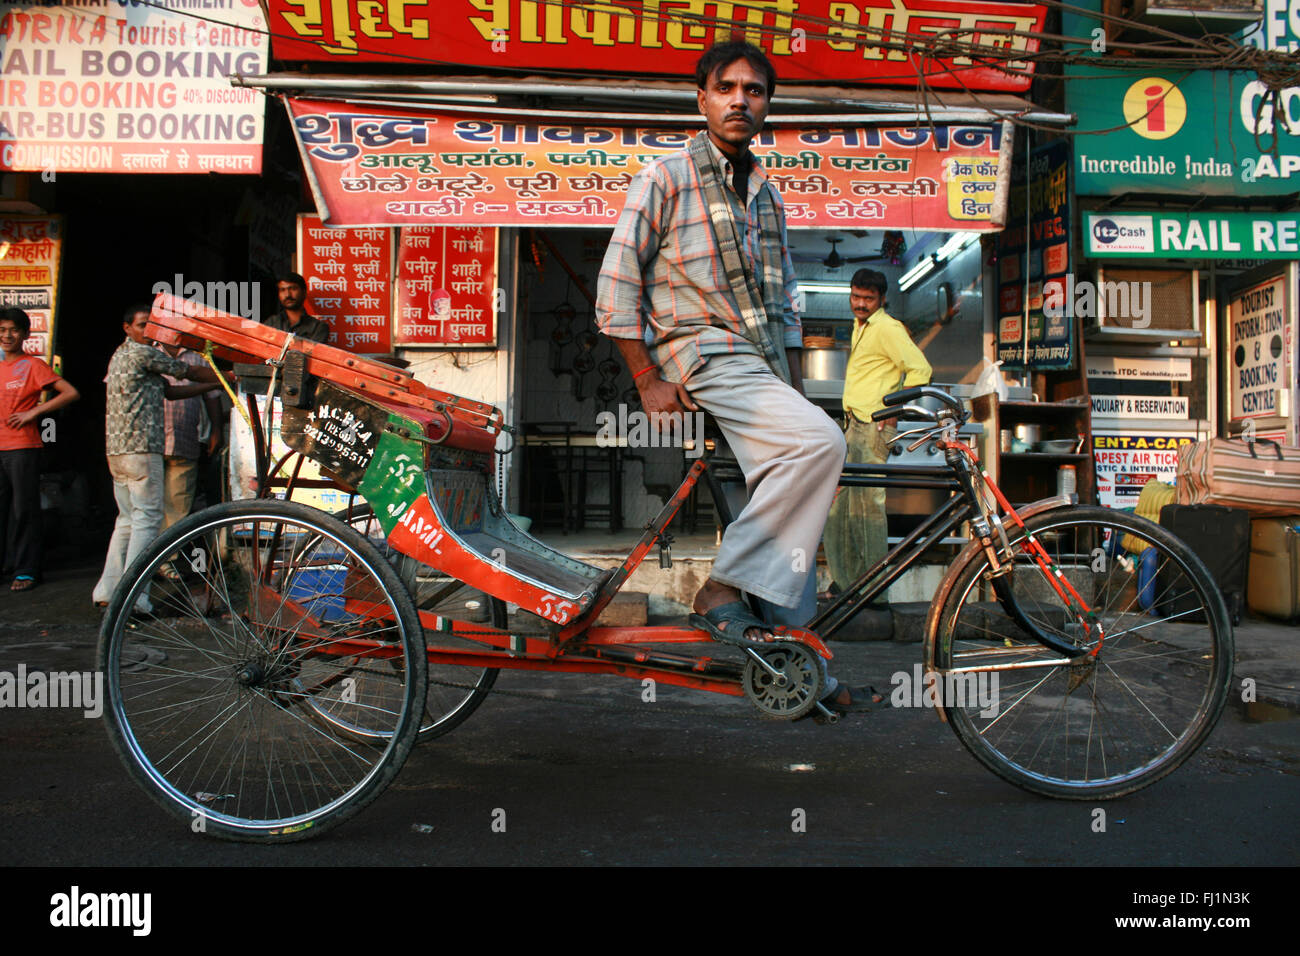 Cyclo Rickshaw driver in a street in Delhi, India - Stock Image